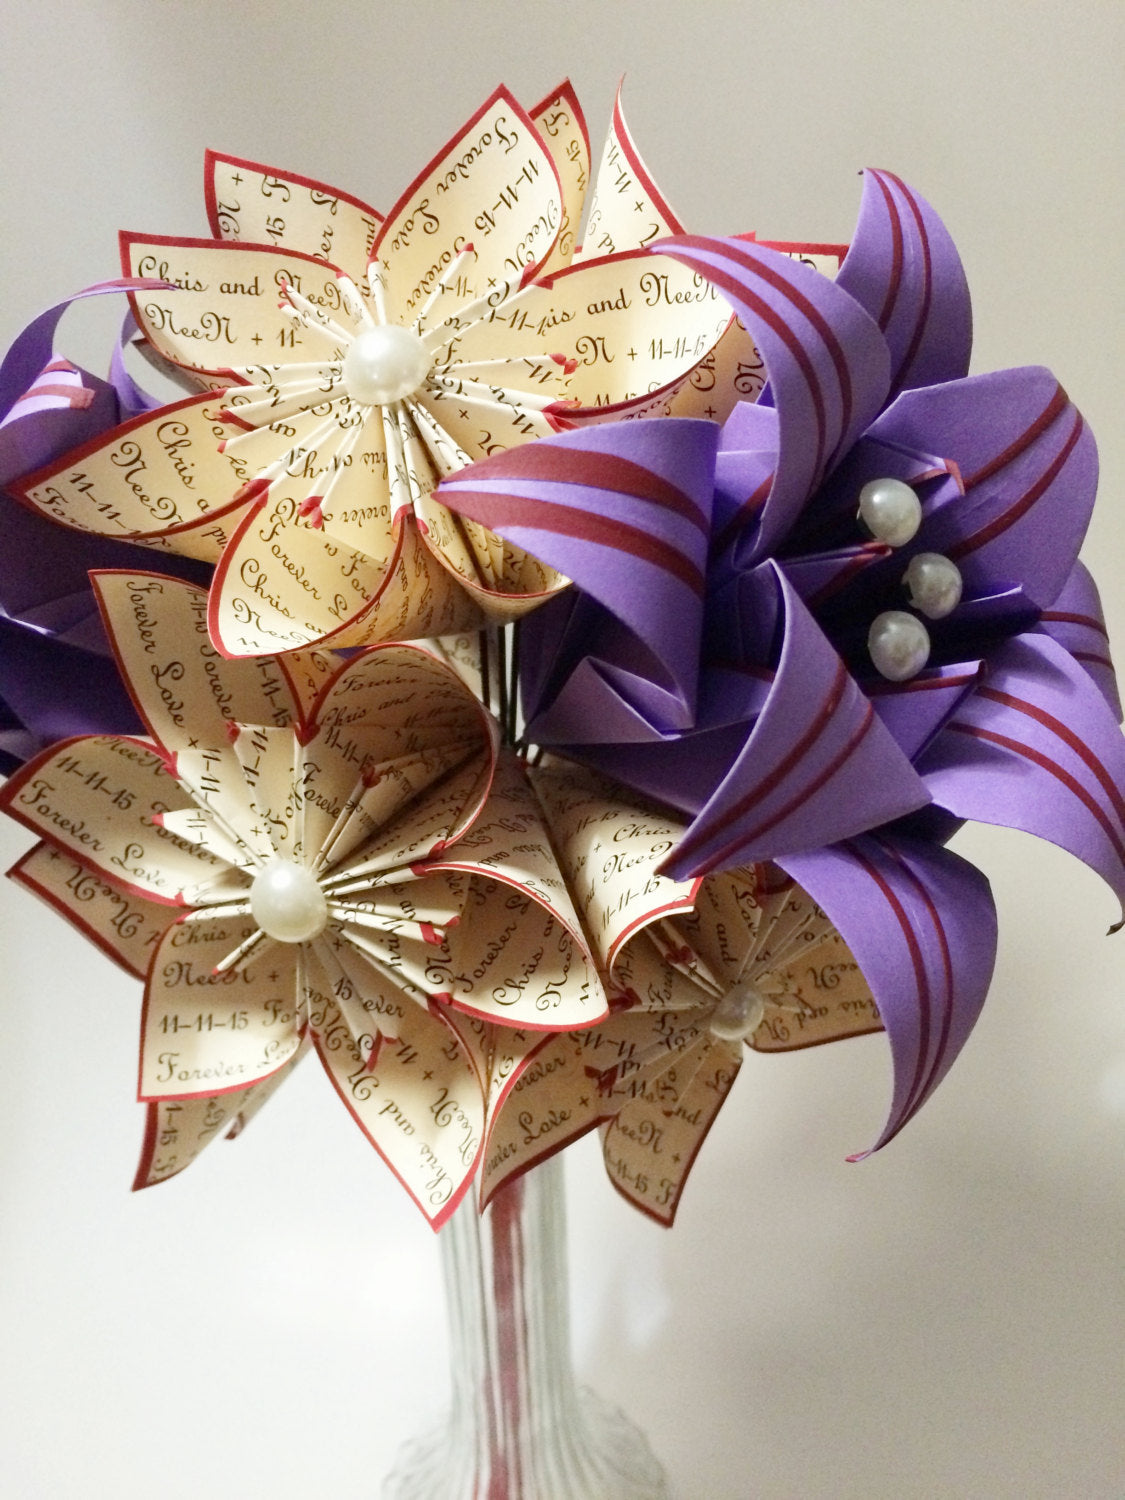 "A Dozen ""I Love You's"" - 12 paper flowers with Stargazer lilies, gifts for her, 1st anniversary bouquet,Christmas gift,one of a kind origami"